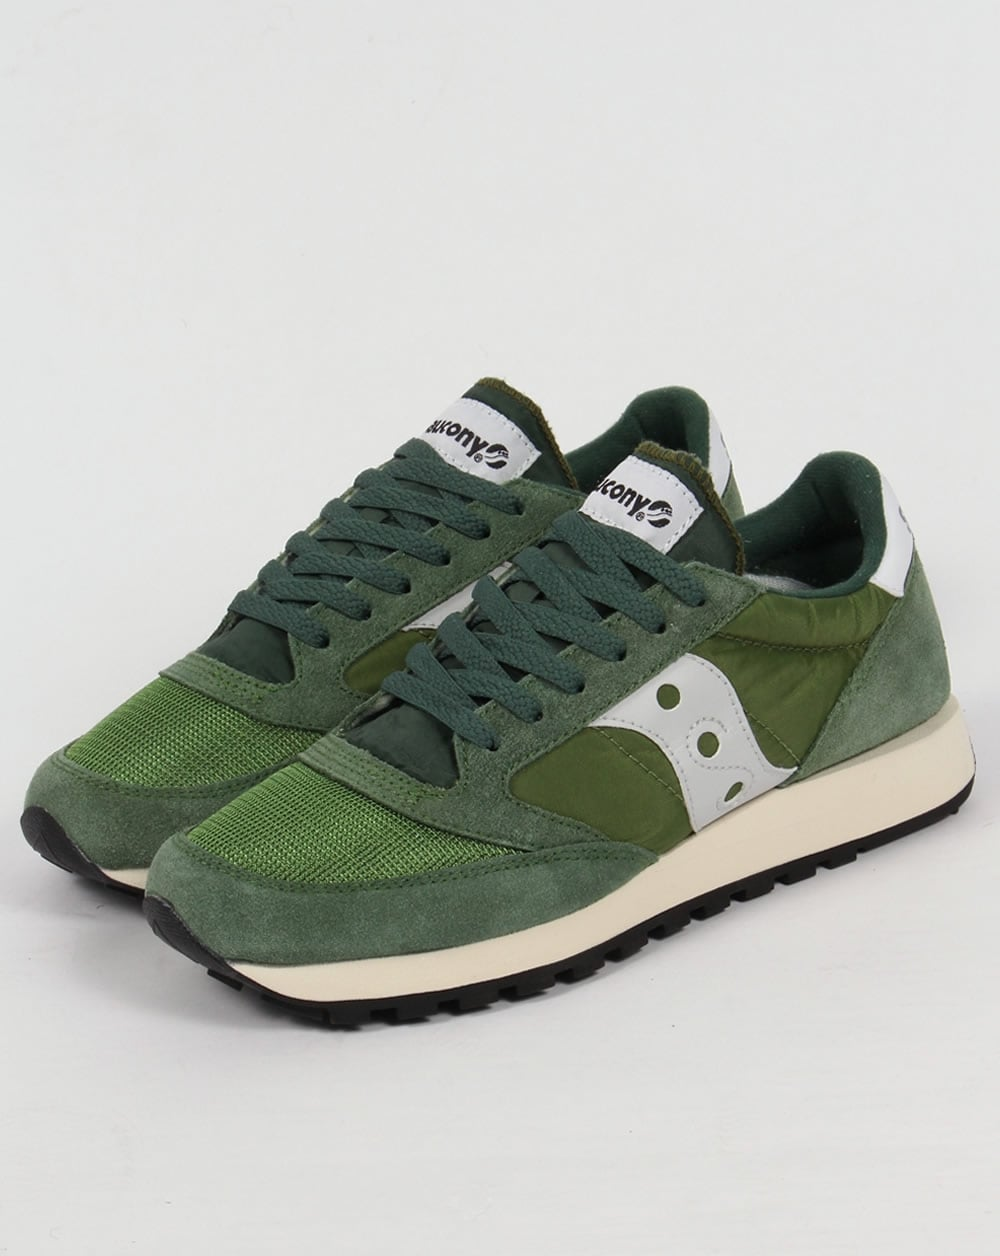 saucony green shoes